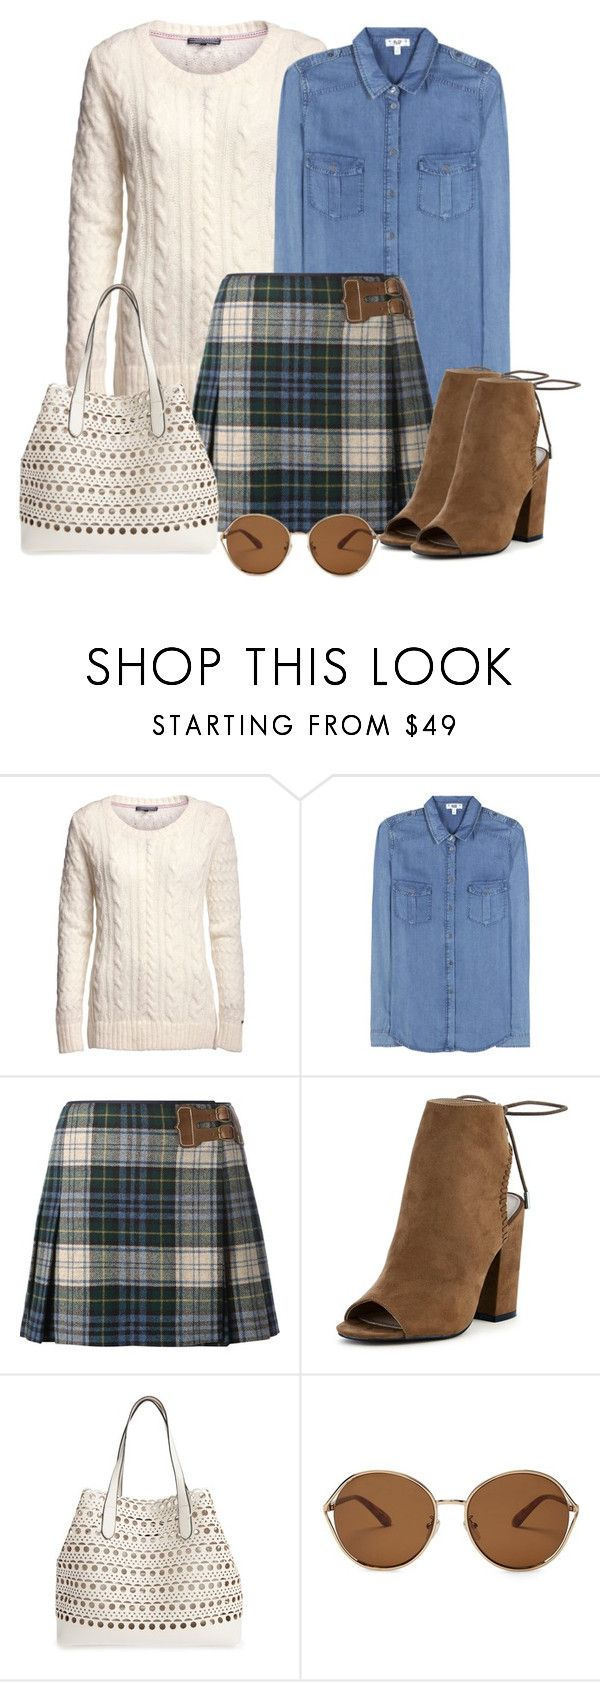 """""""Untitled #1577"""" by gallant81 ❤ liked on Polyvore featuring Tommy Hilfiger, Paige Denim, Polo Ralph Lauren, Street Level and TOMS"""